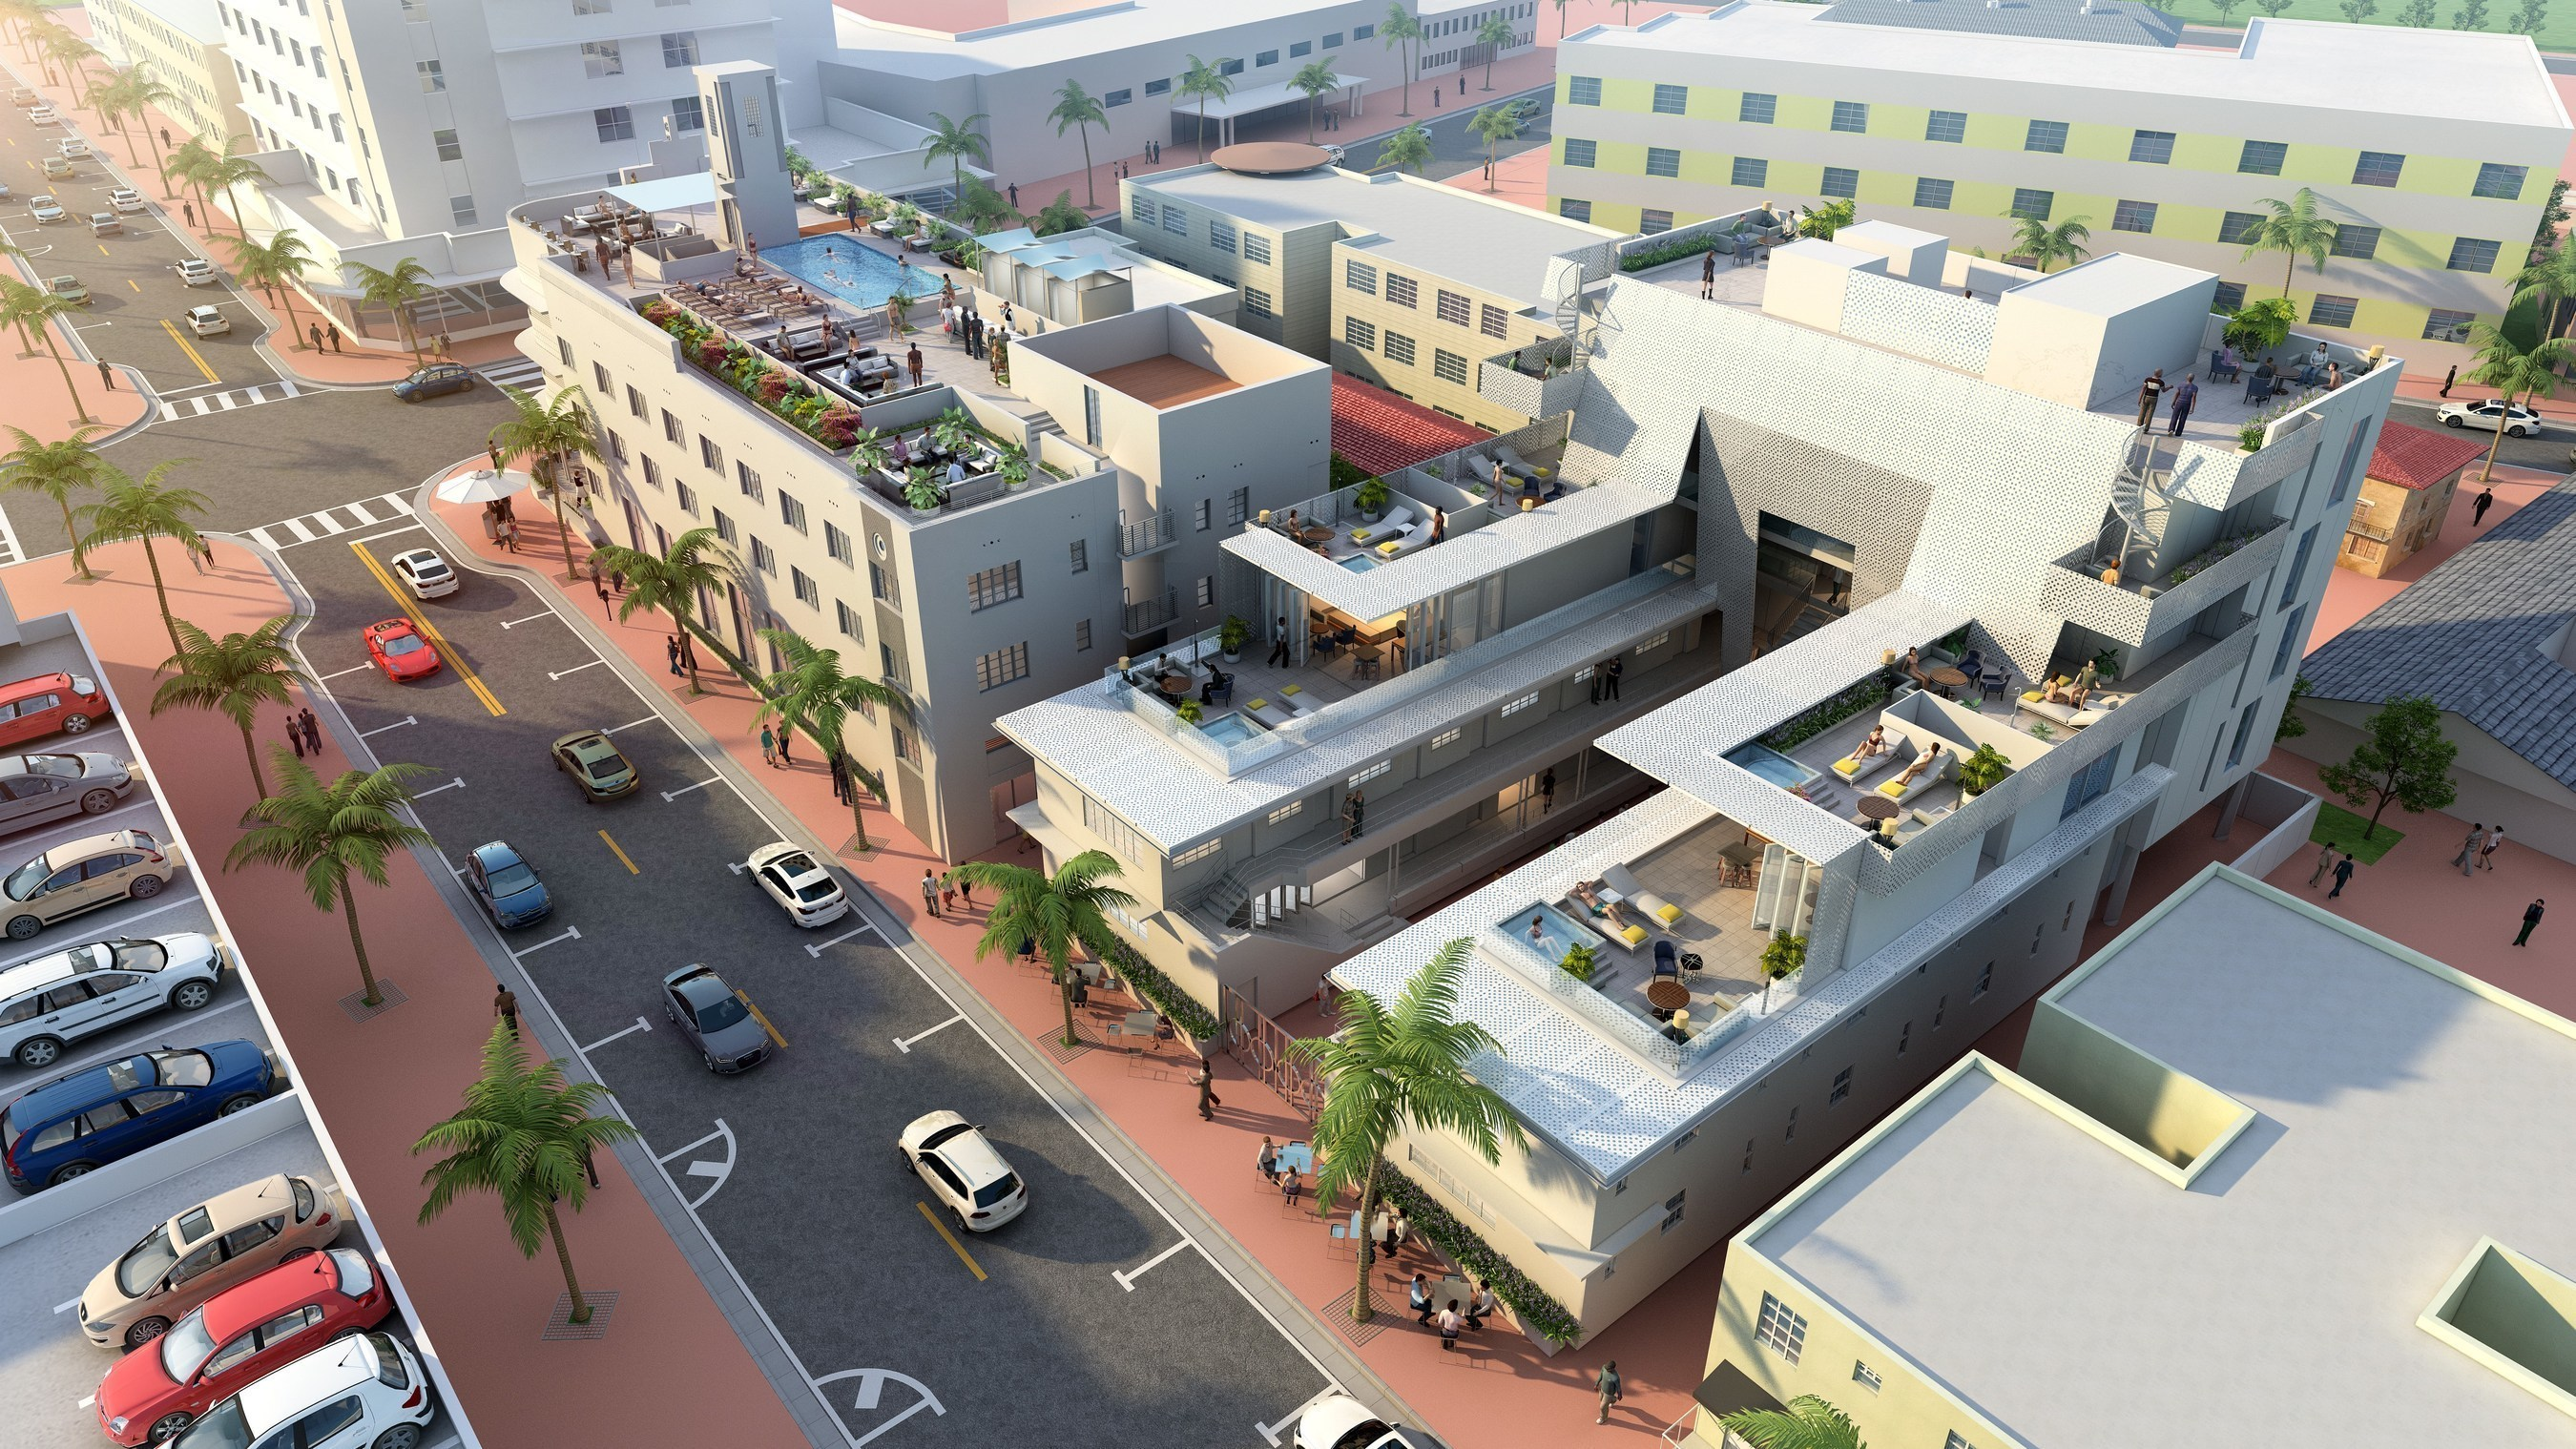 The Greystone Hotel South Beach - Rendering